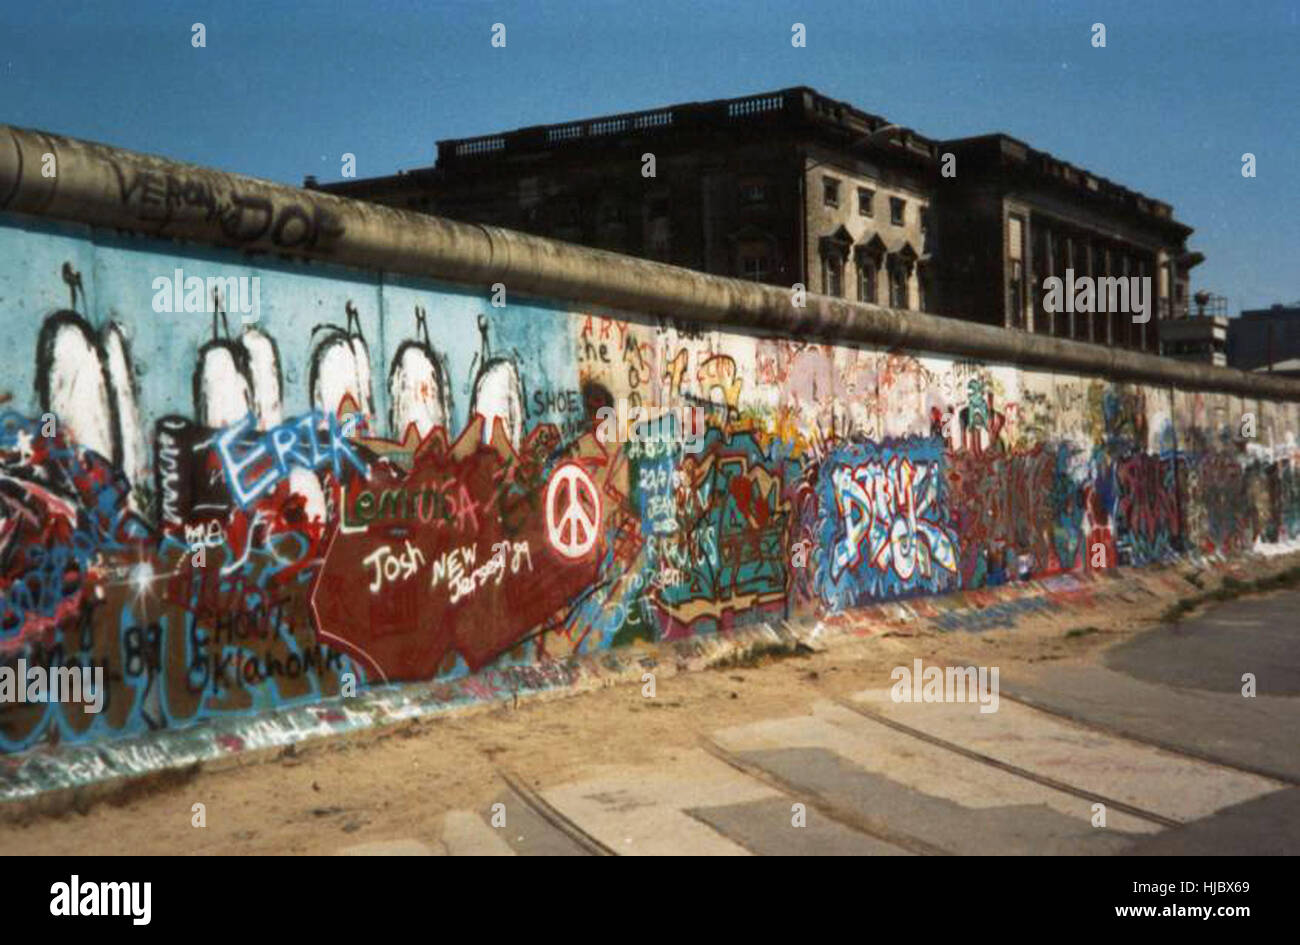 The Berlin Wall - Stock Image